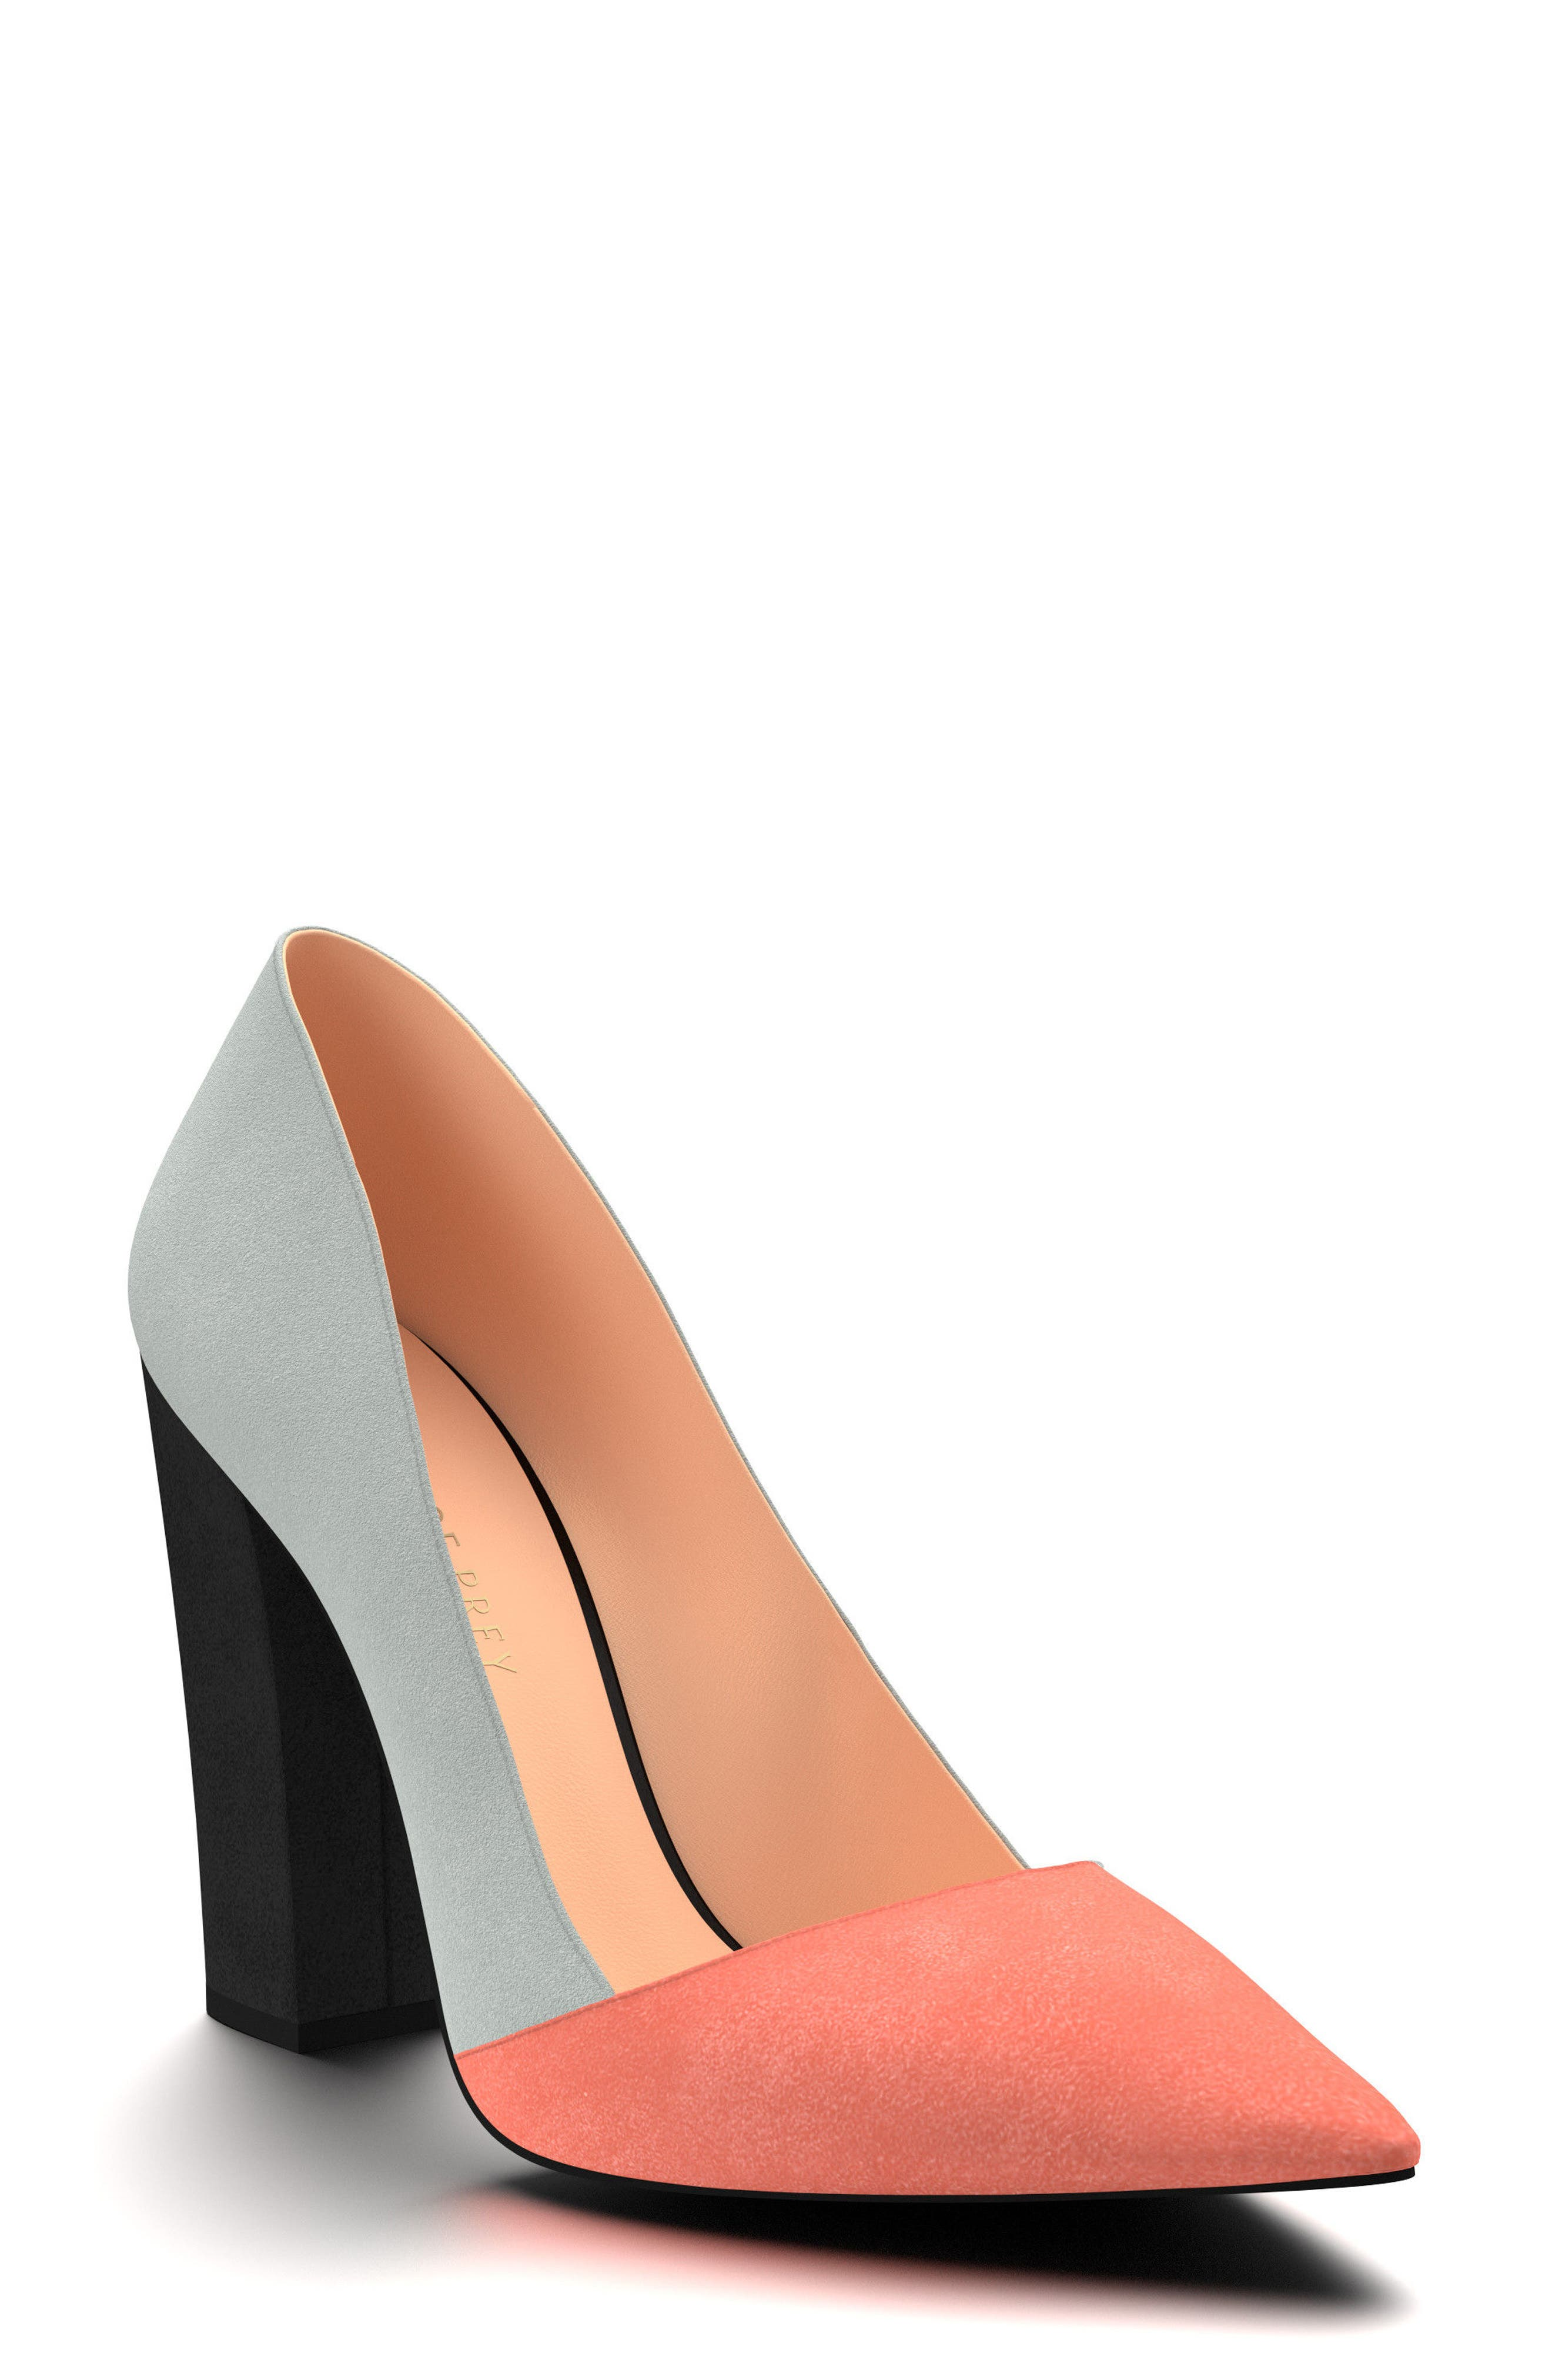 Main Image - Shoes of Prey Block Heel Pump (Women)